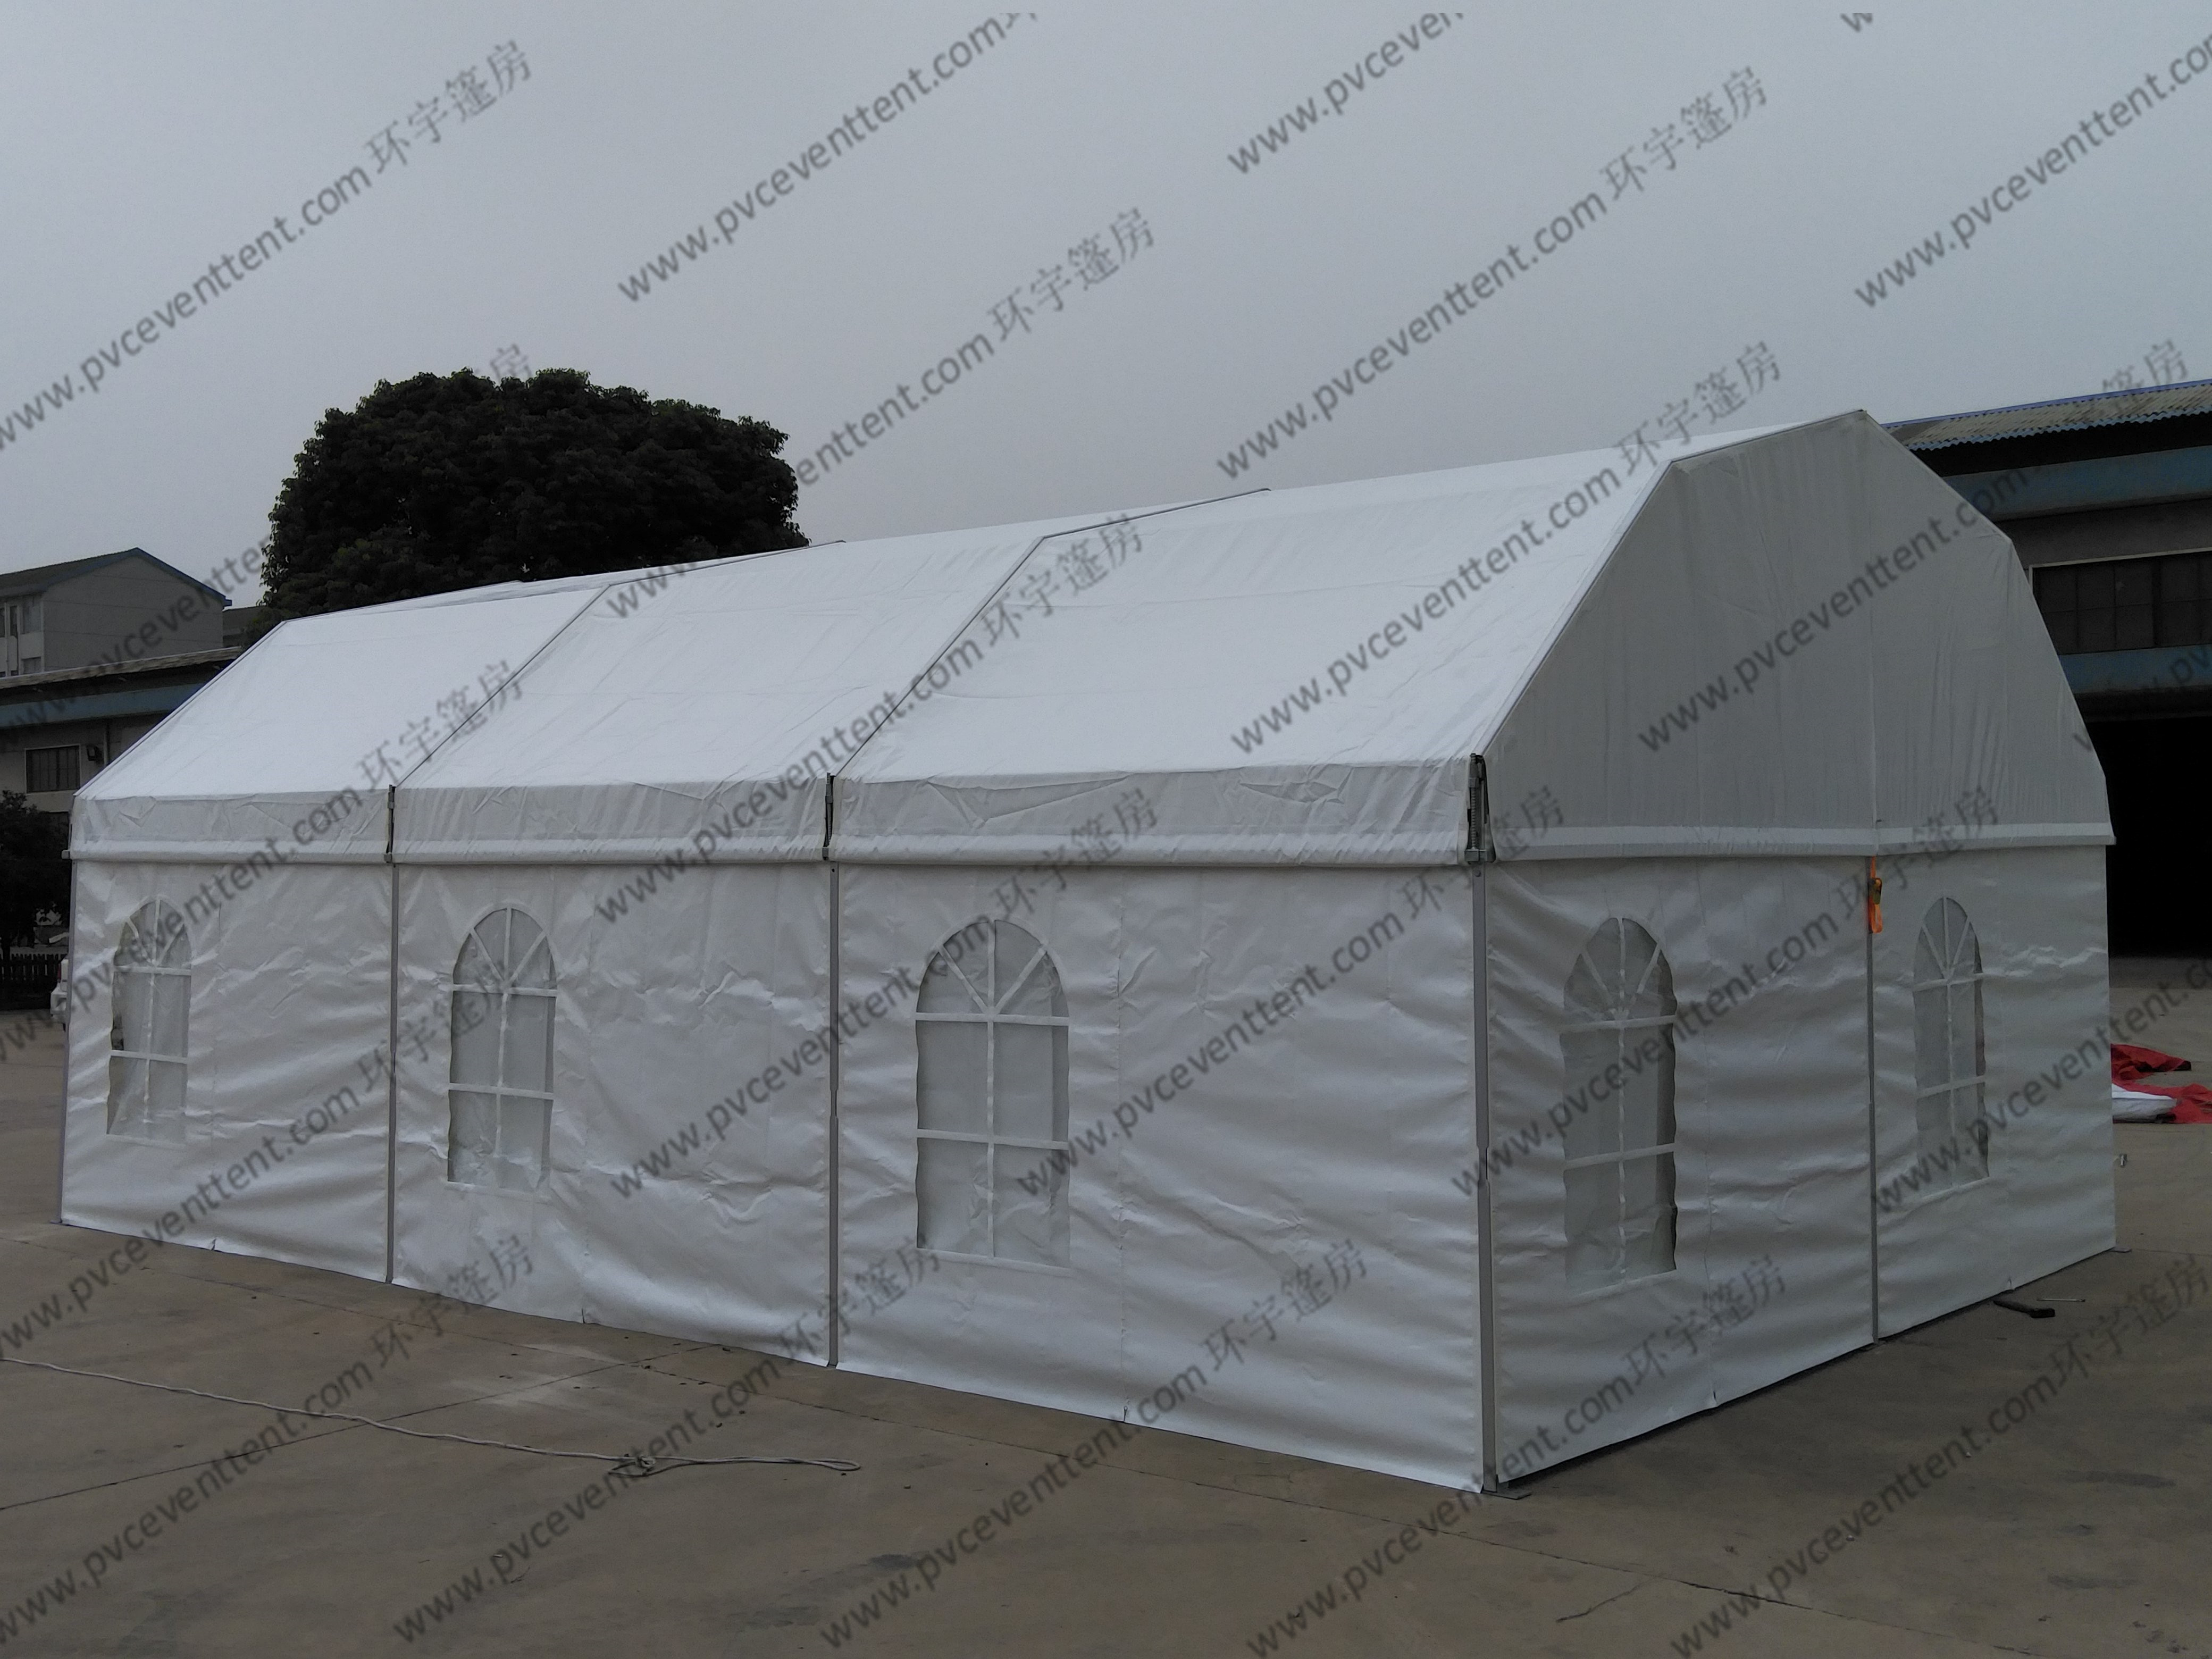 Open Sidewalls Arcuate Outdoor Event Tents Clear Top 6 x 9m Width UV Resistant